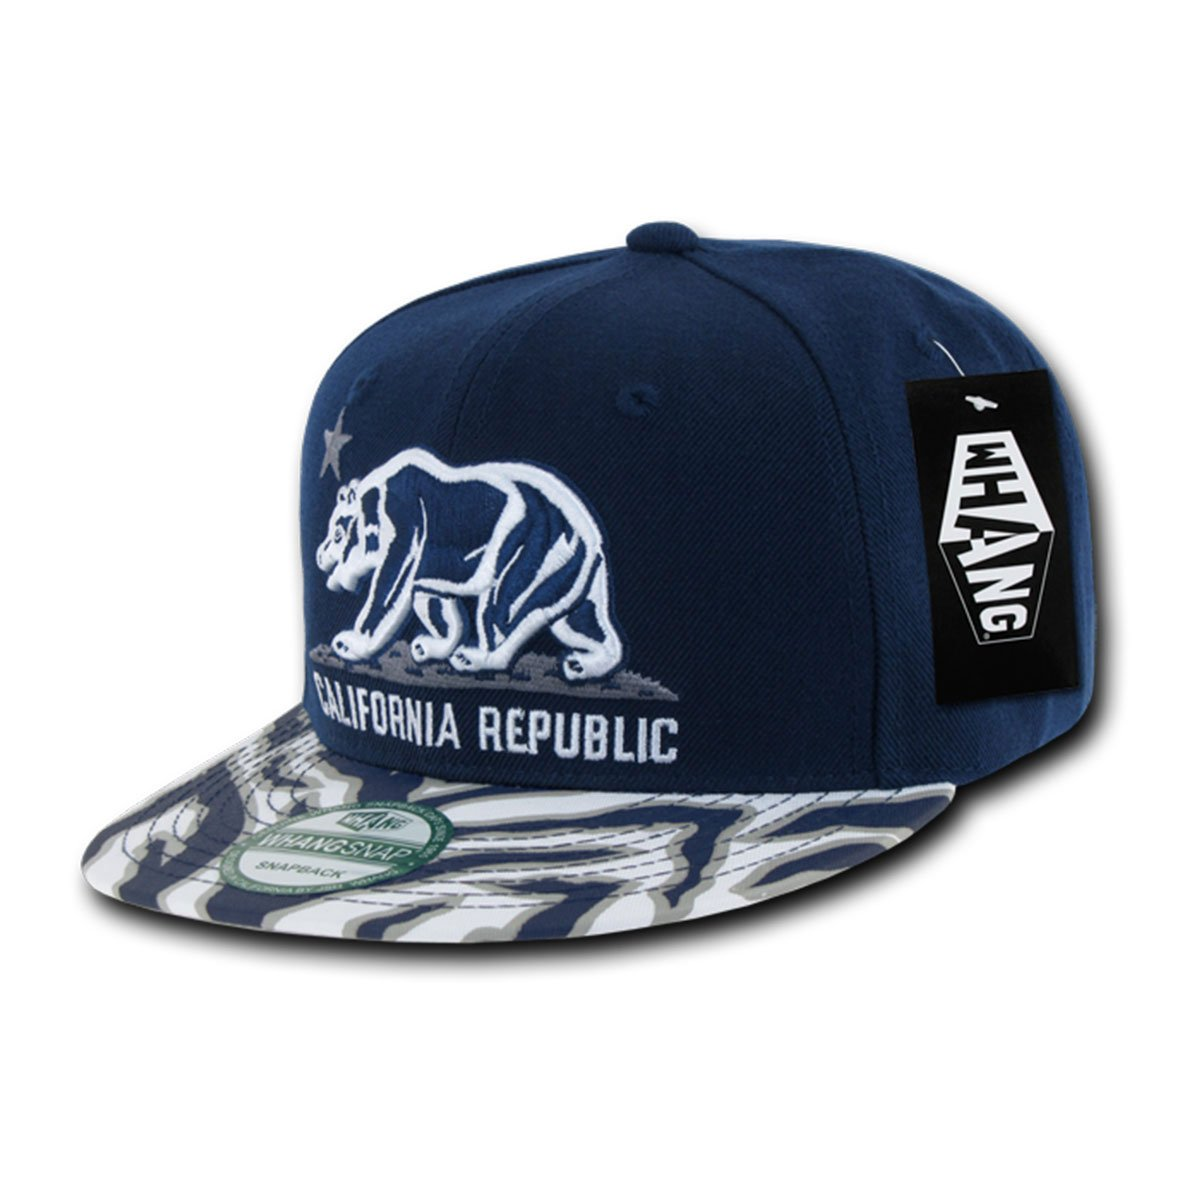 ea411ac7 Amazon.com: WHANG Ziger Flat Bill California Bear SnapBack Baseball Caps  W30 Black: Clothing